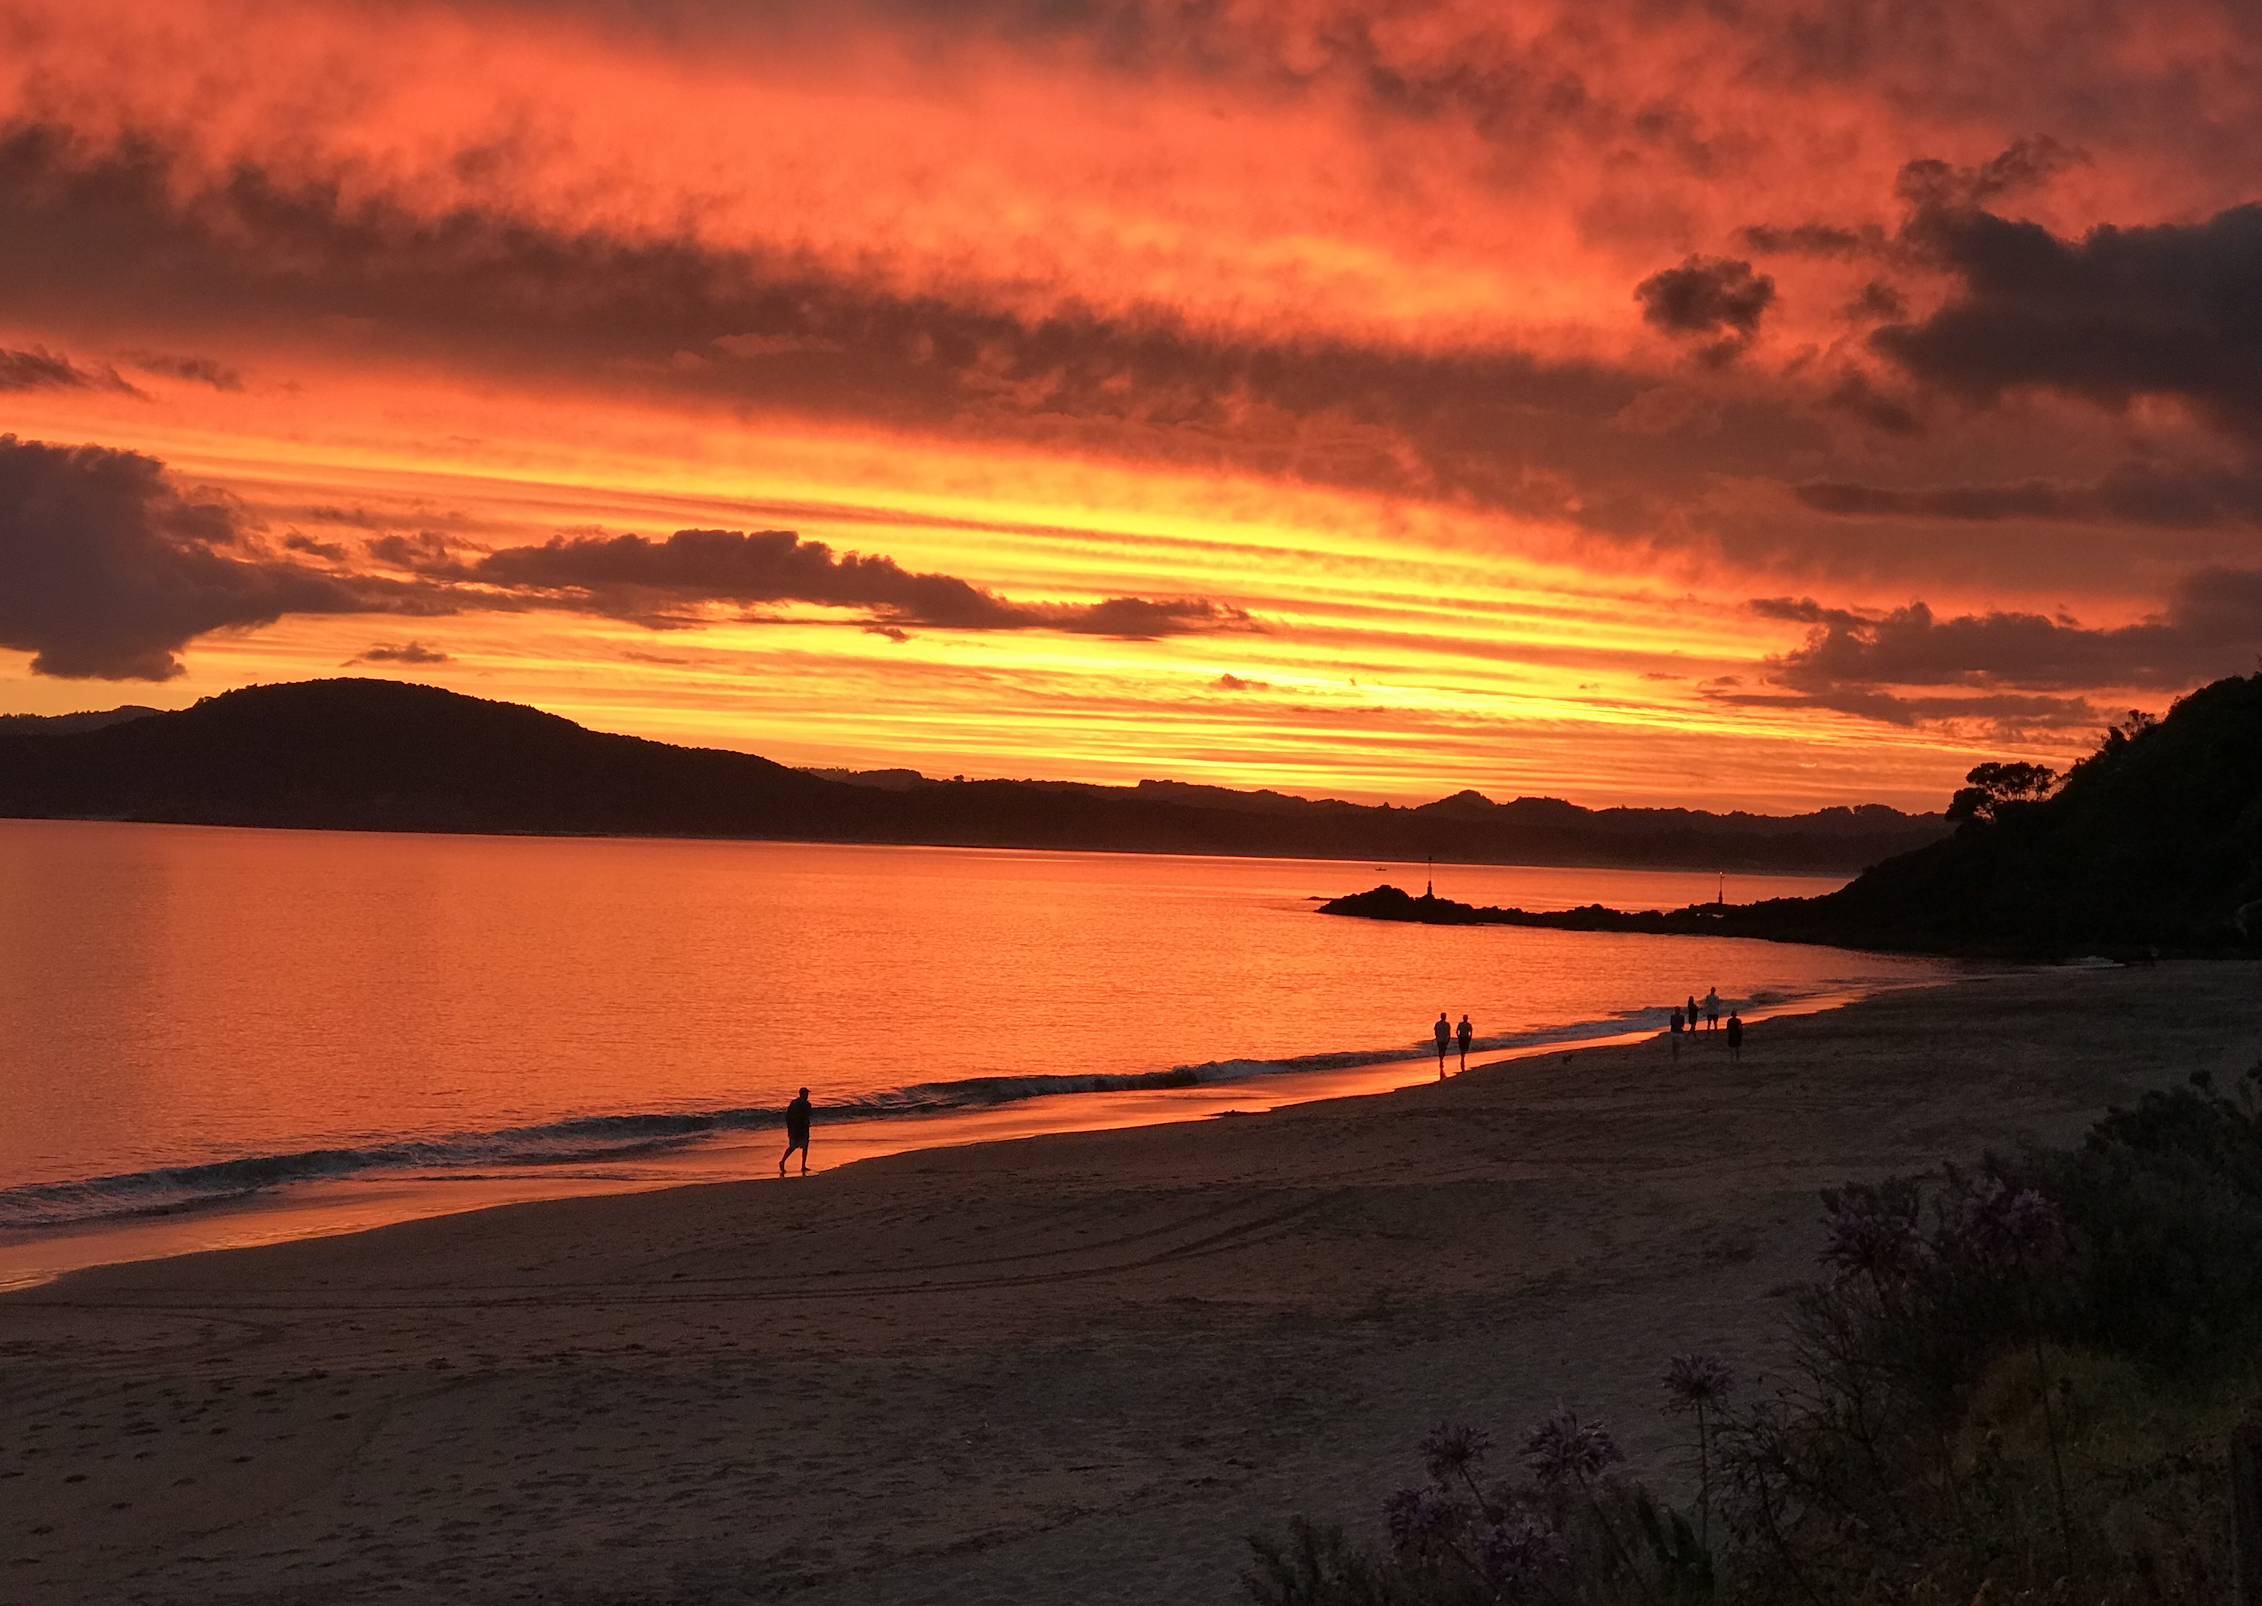 A January sunset at Wellingtons Bay, Northland.